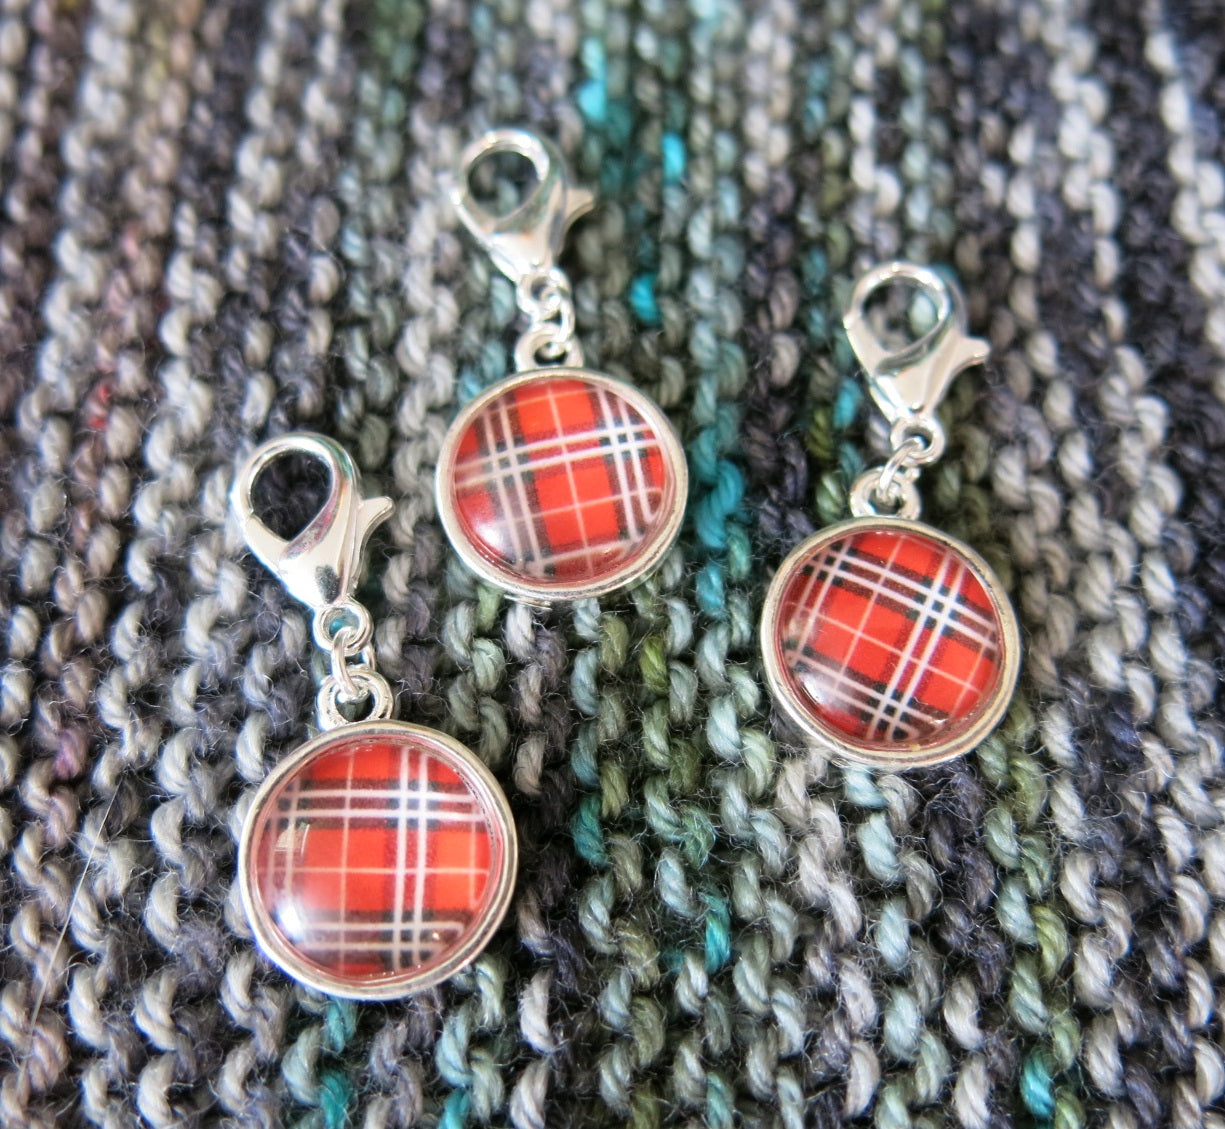 hand assembled scottish tartan clasp progress keepers for knitting and crochet